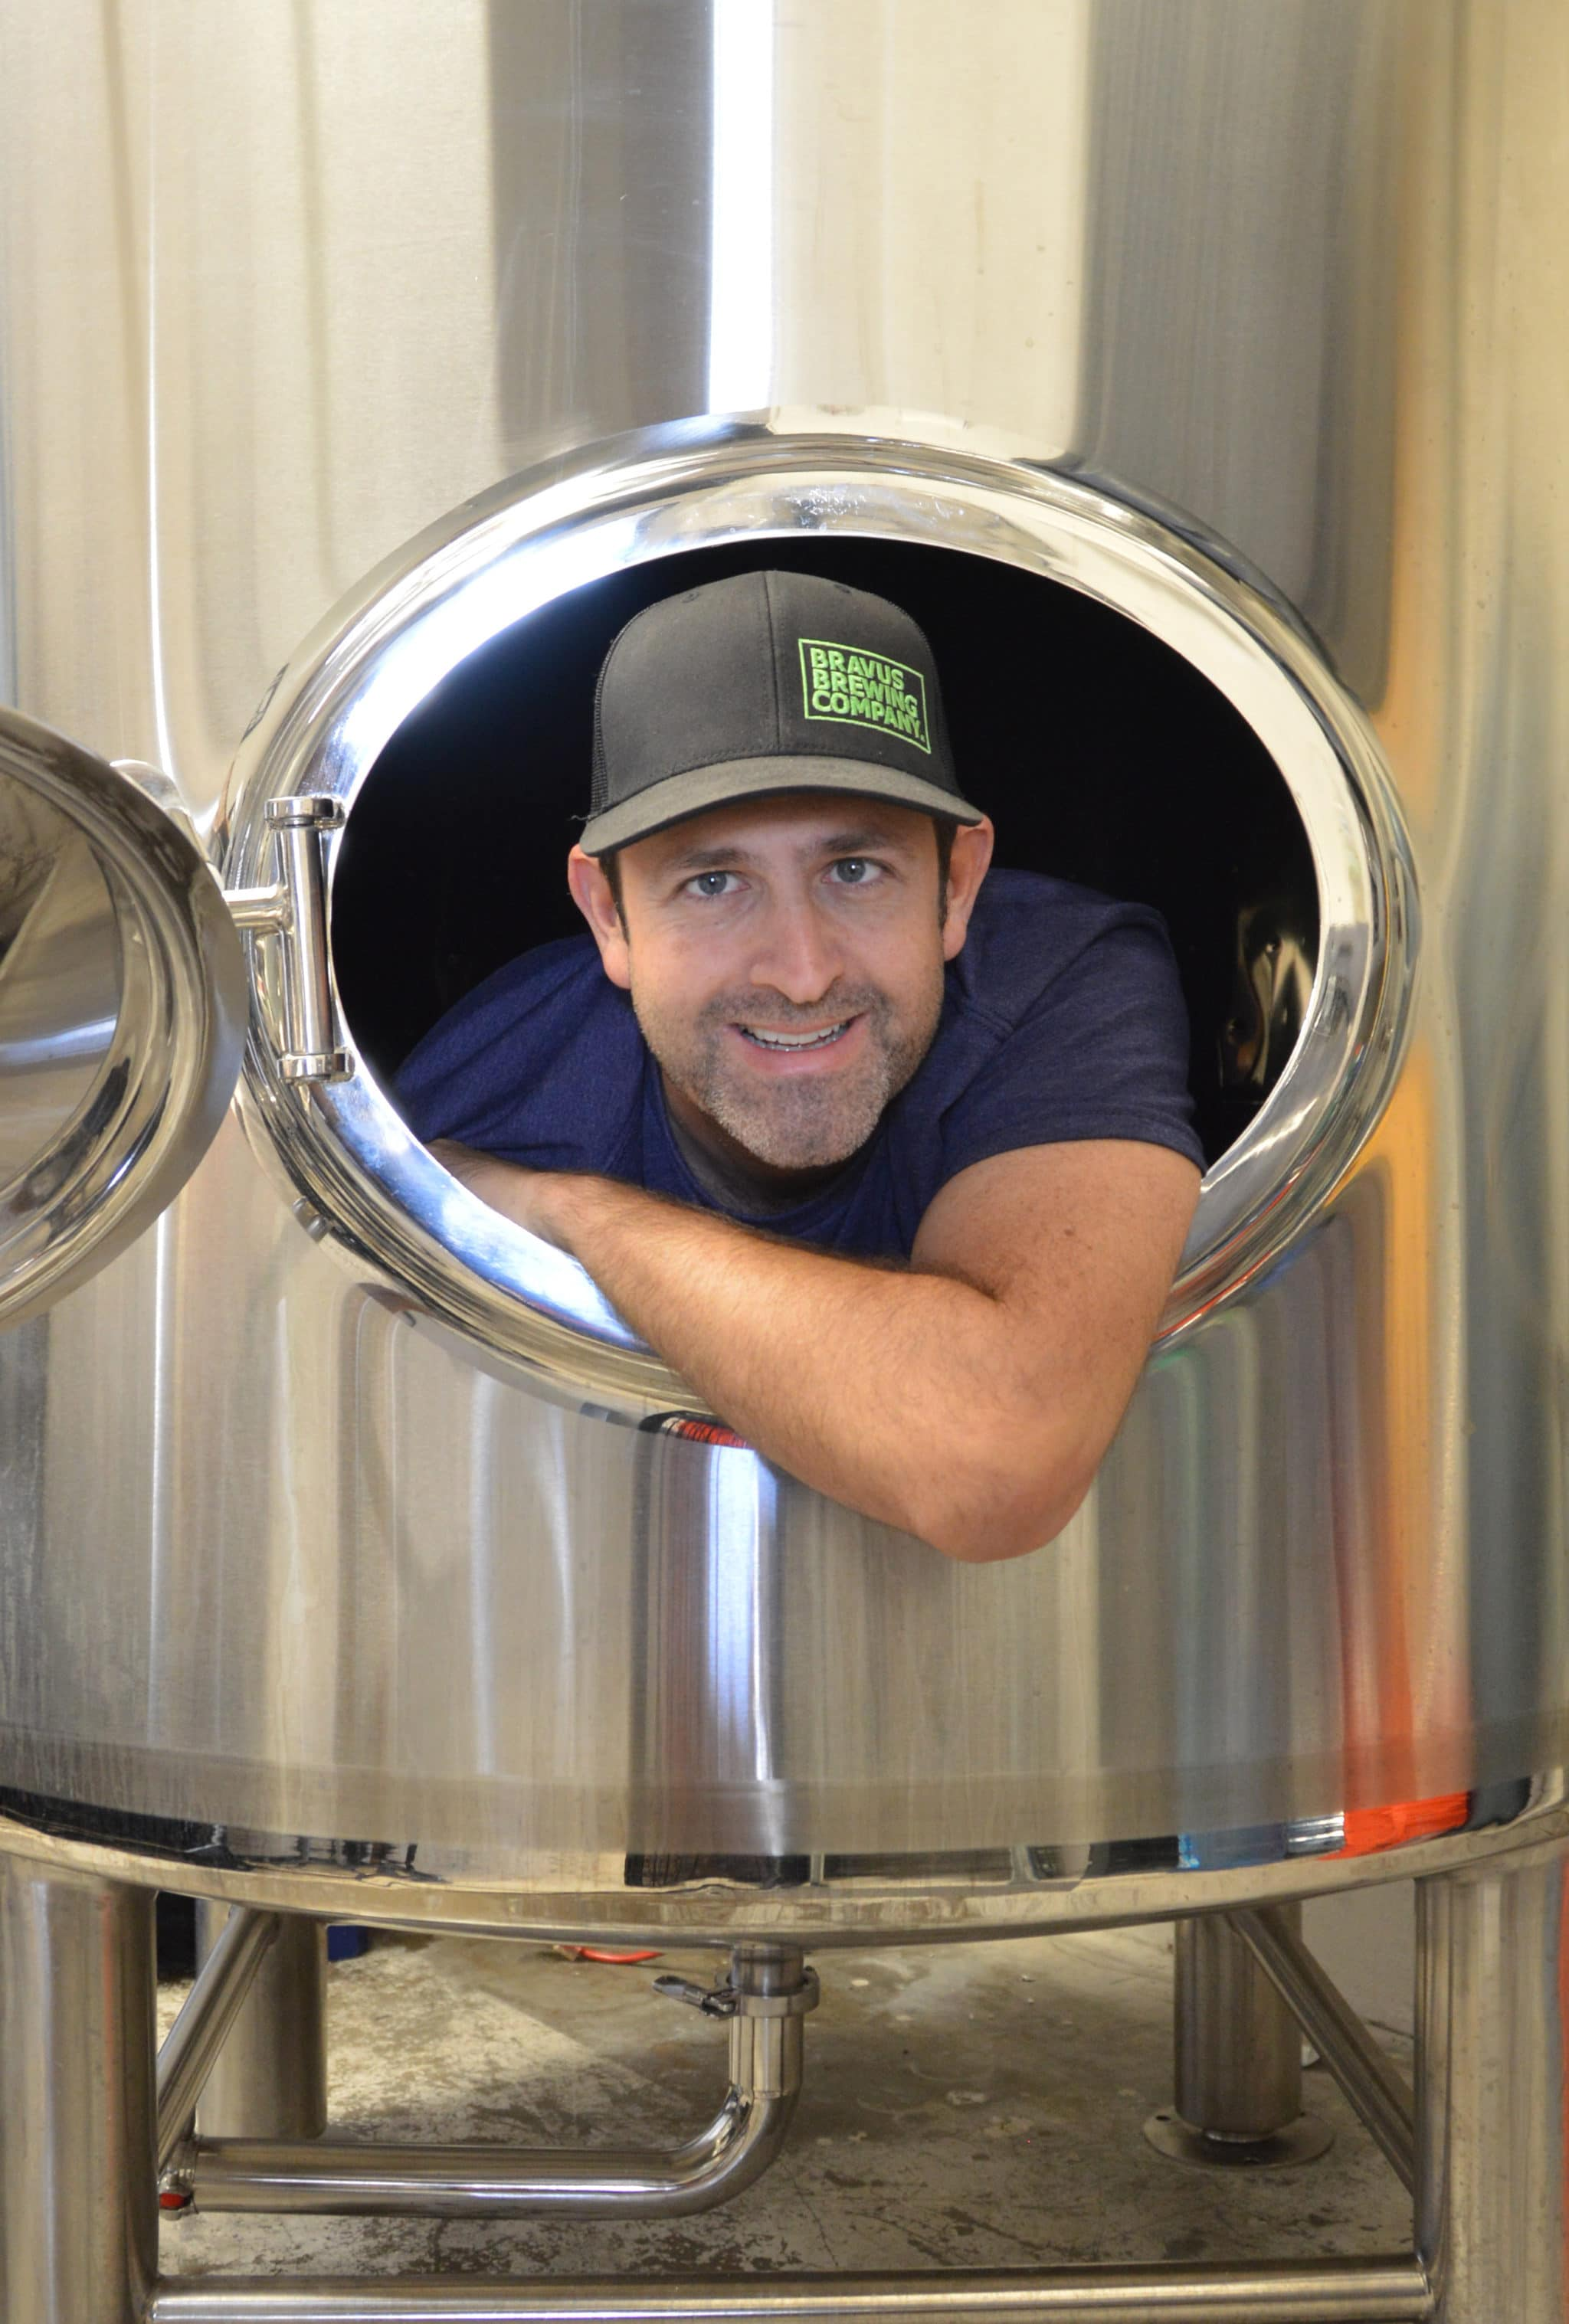 Philip Brandes, founder of Bravus Brewing Company